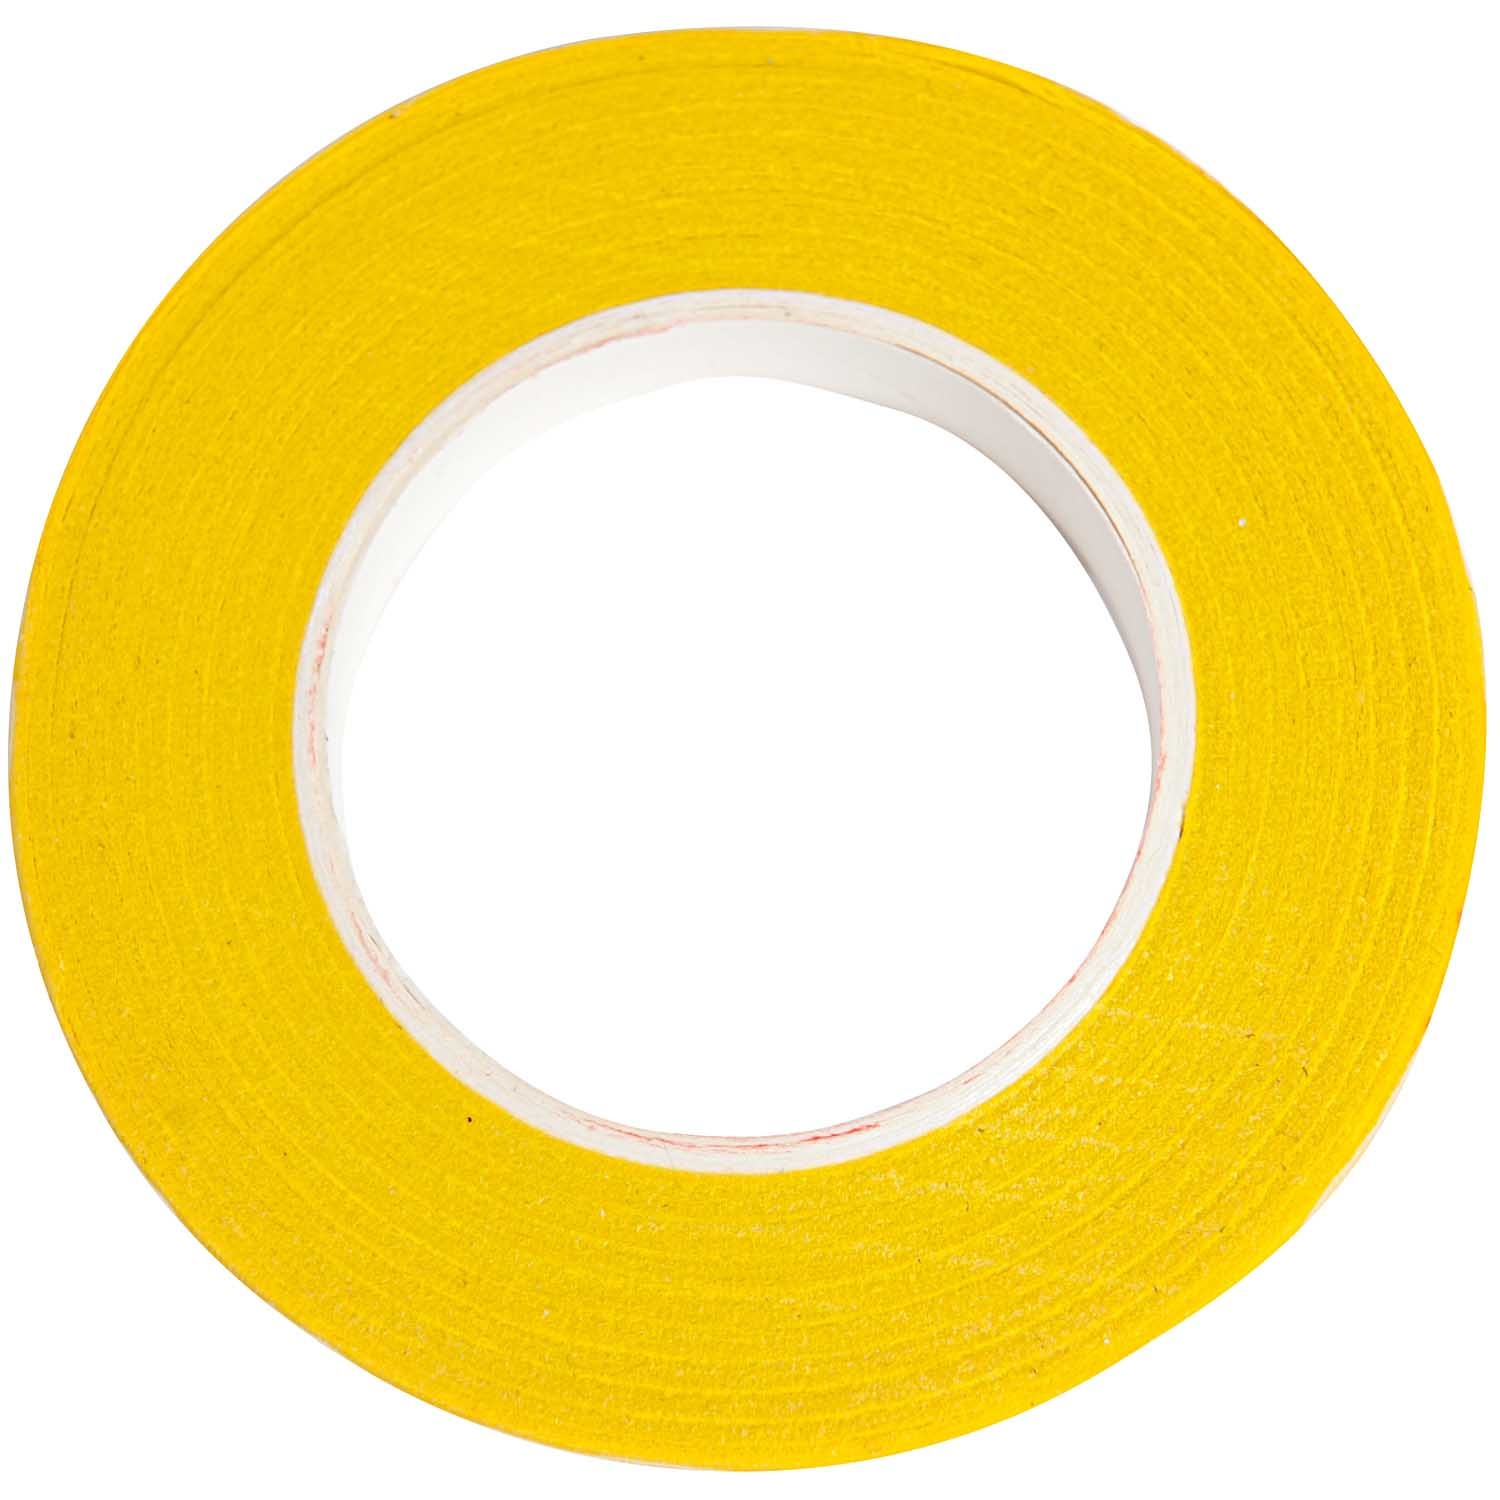 Rico NAY FLORAL CREPE TAPE, YELLOW  12 MM X 27,5 M